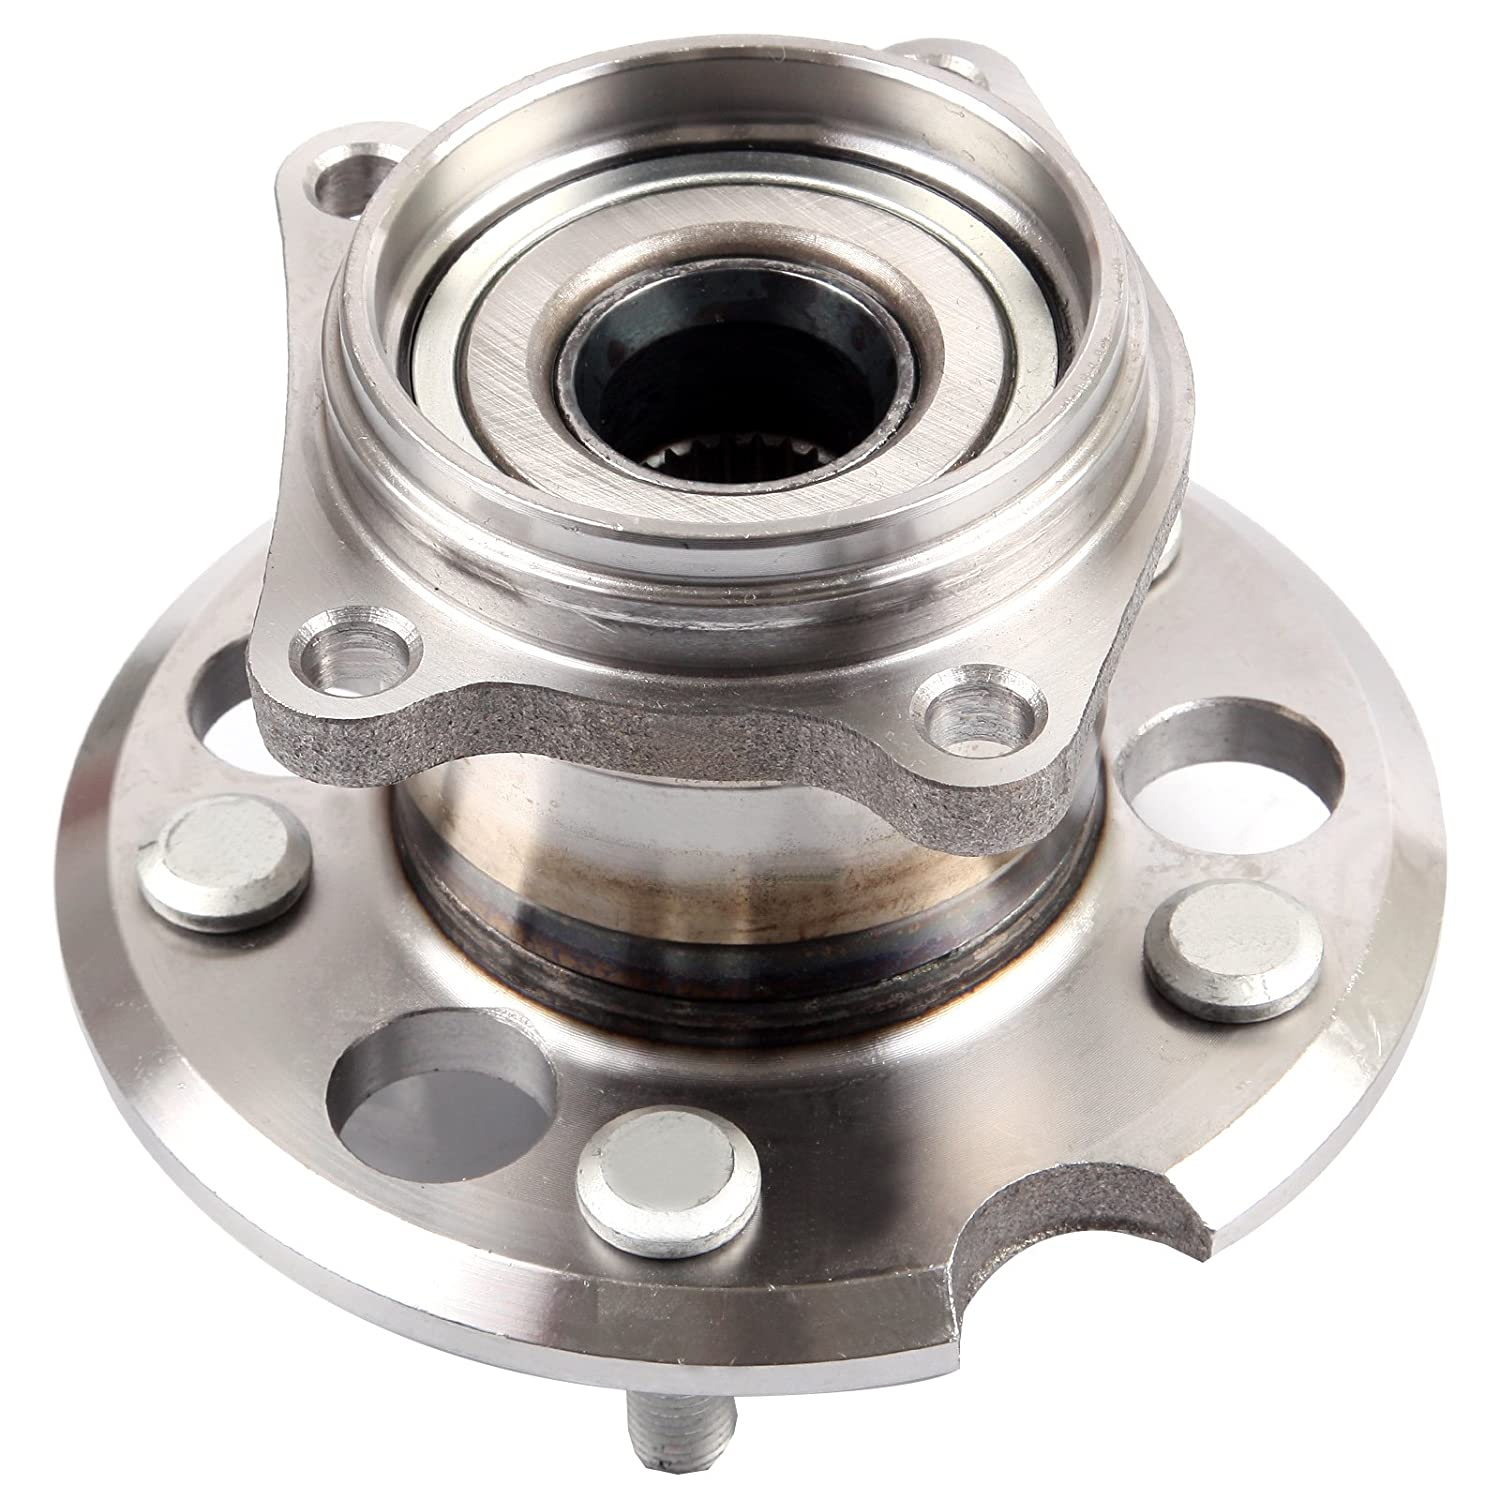 SCITOO 512338 Rear Wheel Hub Bearing Assembly fit 2001-2005 Toyota 5 Lugs 065824-5206-1629331